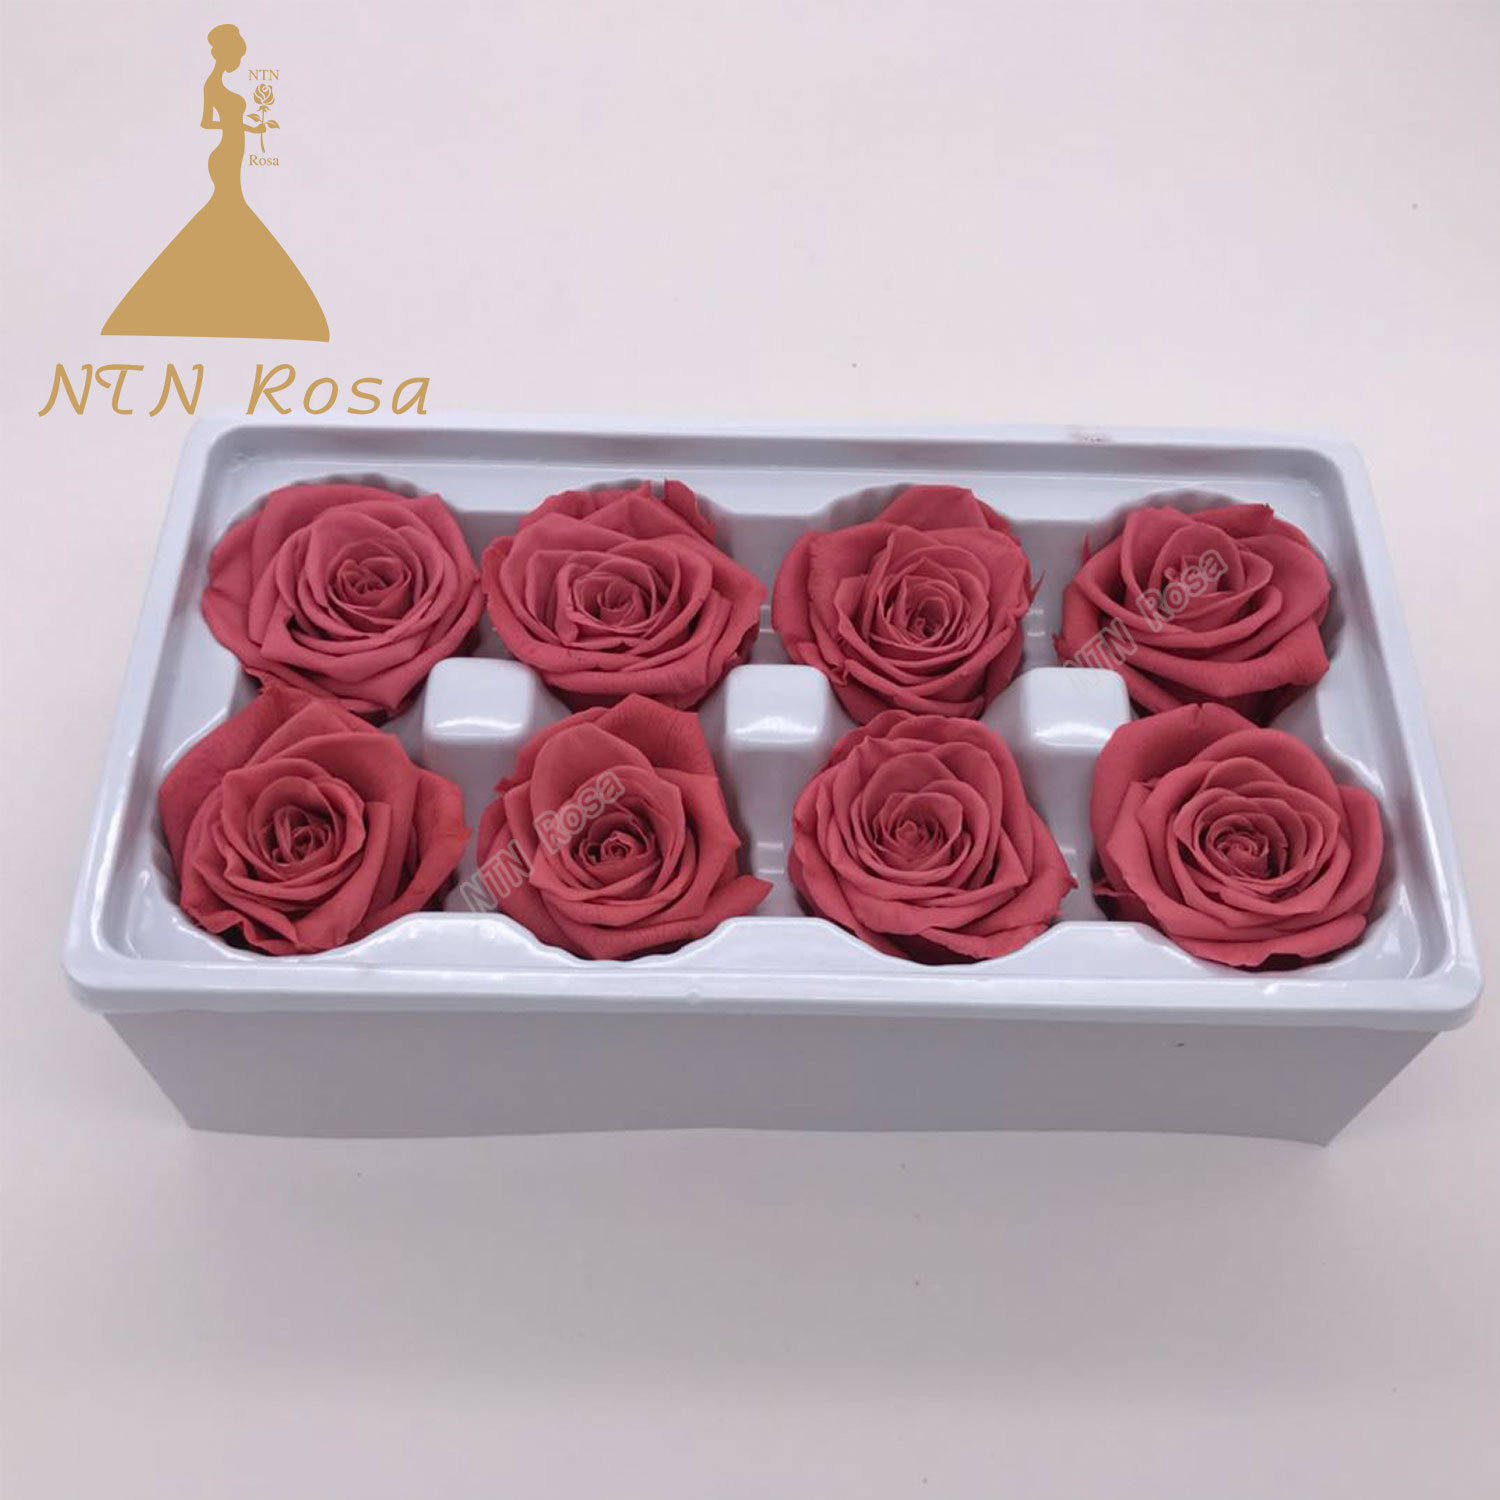 China silk flowers silk flowers manufacturers suppliers made in china silk flowers silk flowers manufacturers suppliers made in china izmirmasajfo